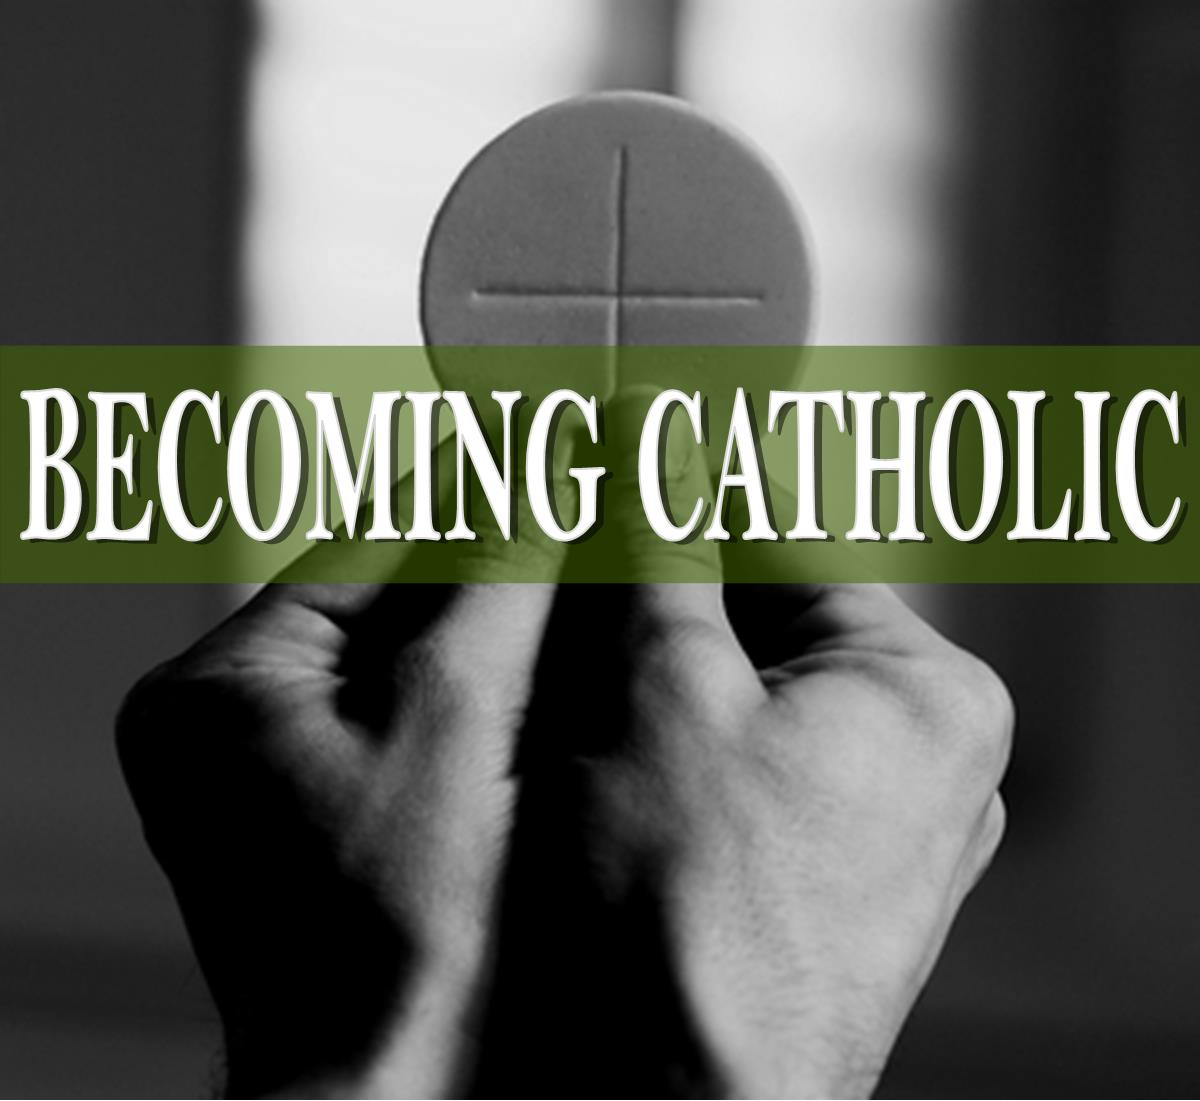 BecomingCatholic